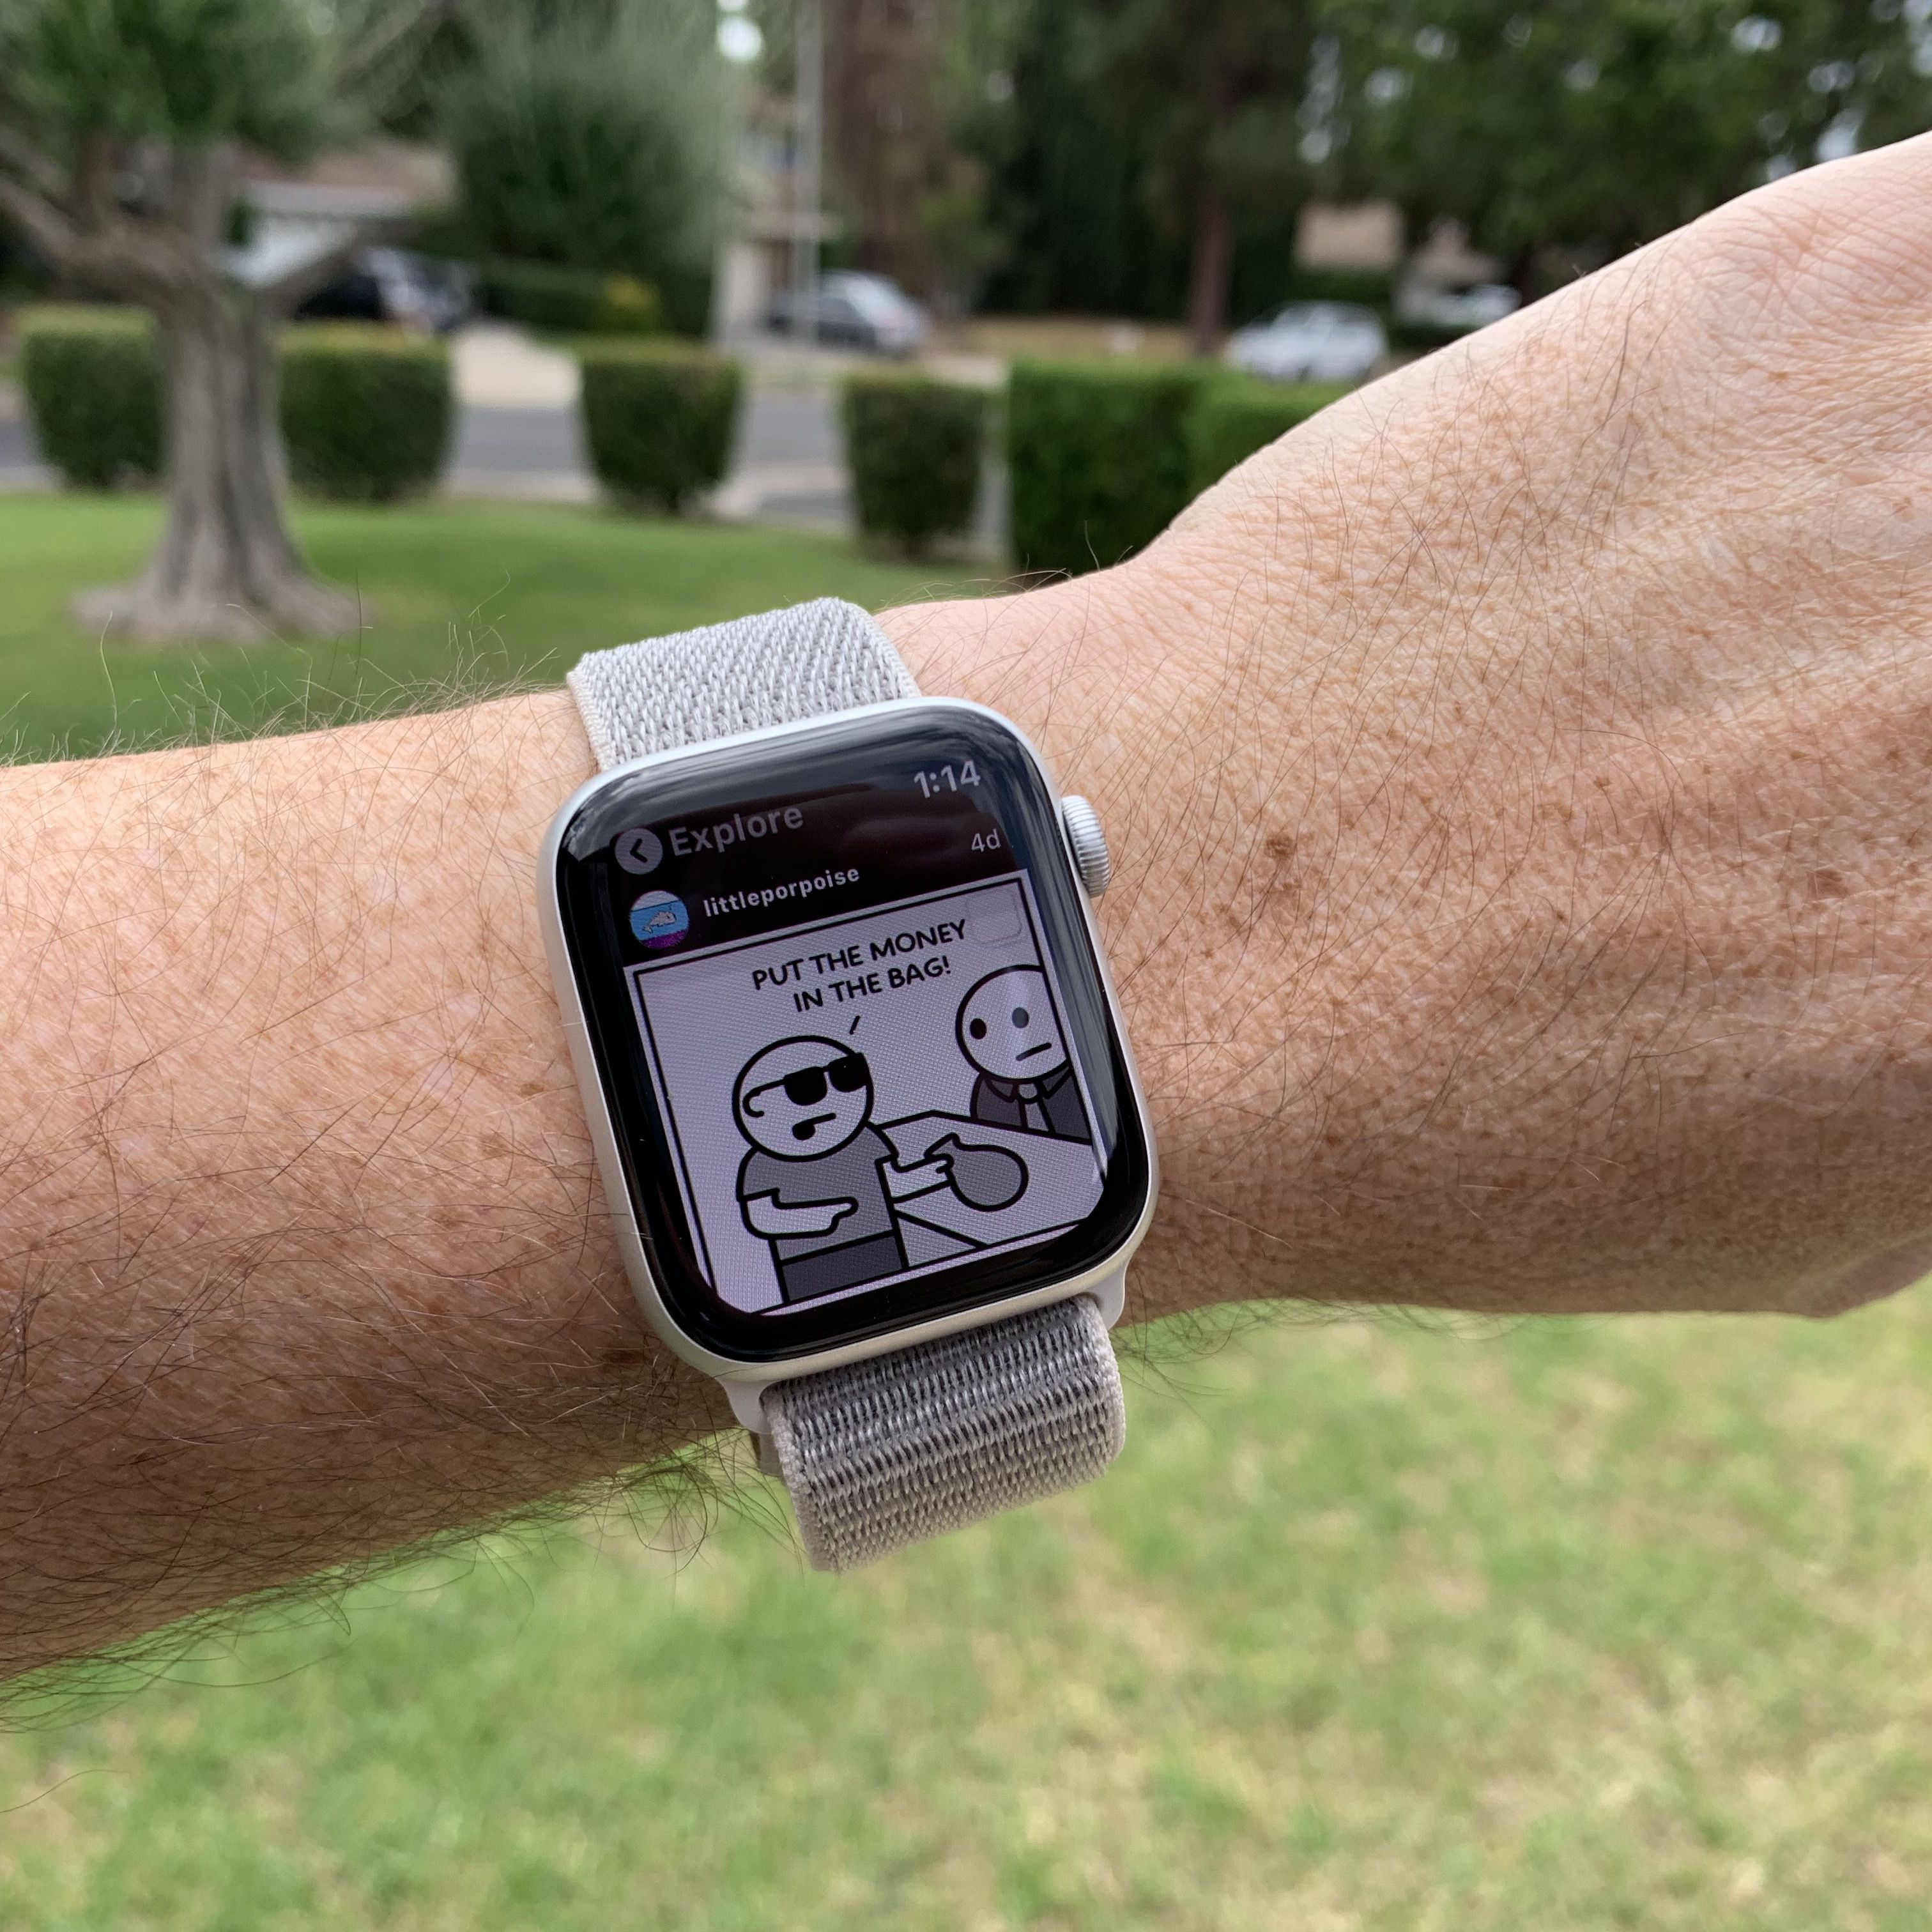 Can You Get Instagram on Apple Watch?